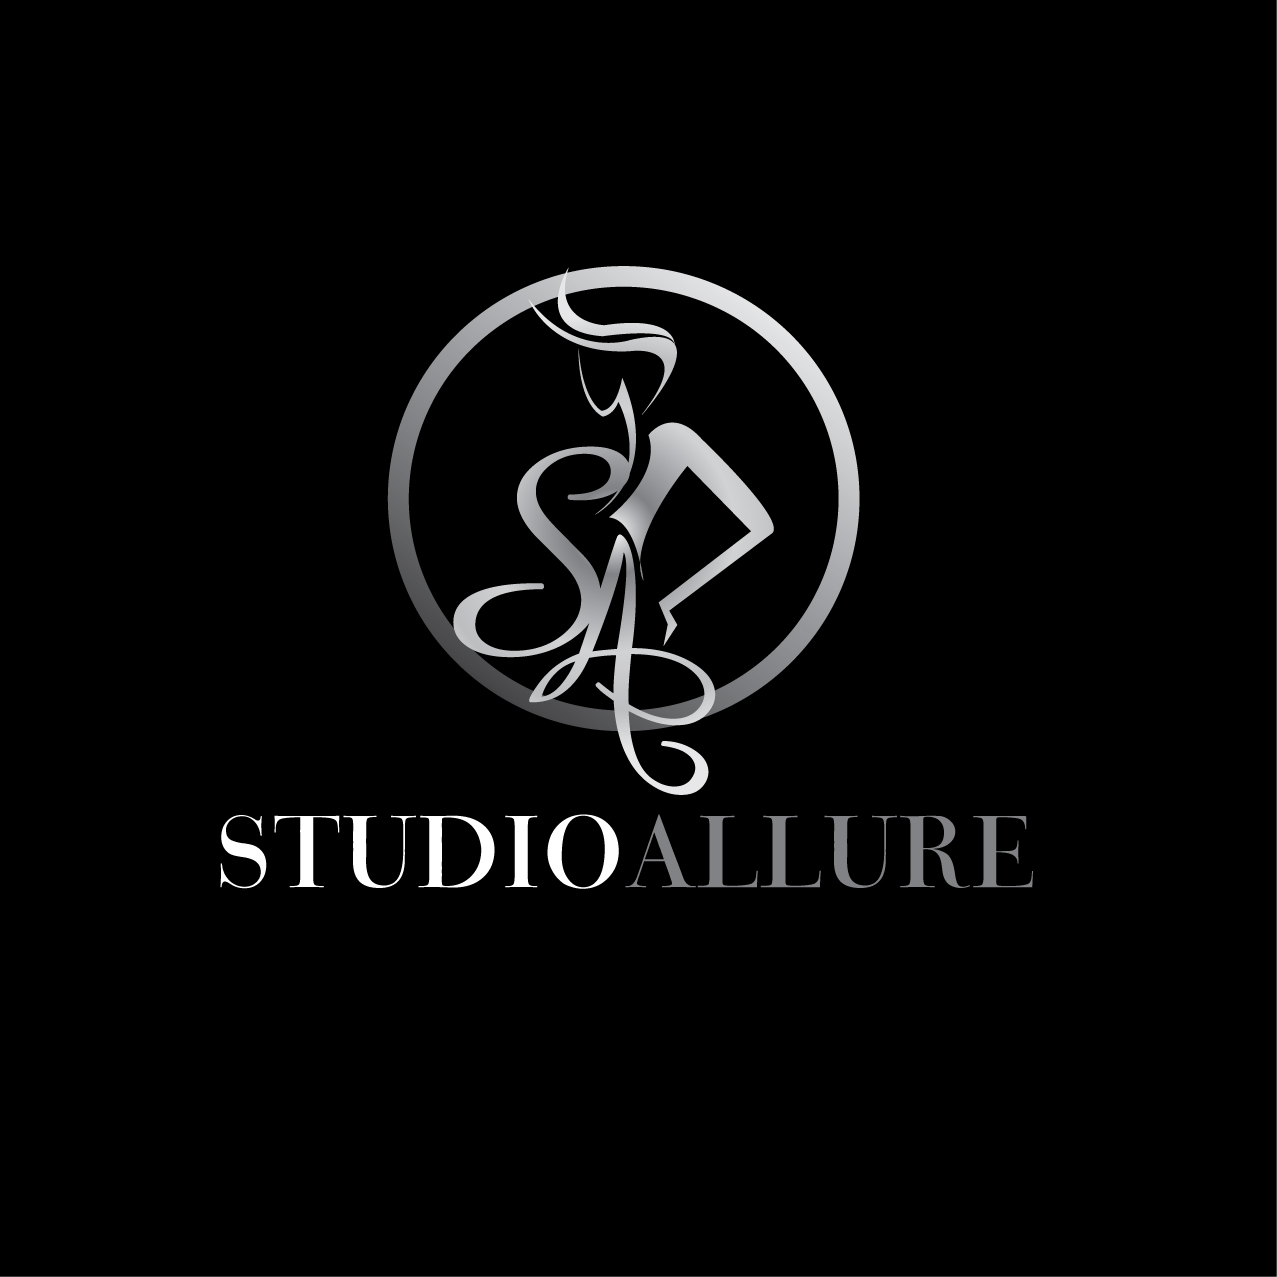 Logo Design by stormbighit - Entry No. 95 in the Logo Design Contest Logo Design Needed for Exciting New Company Studio Allure.